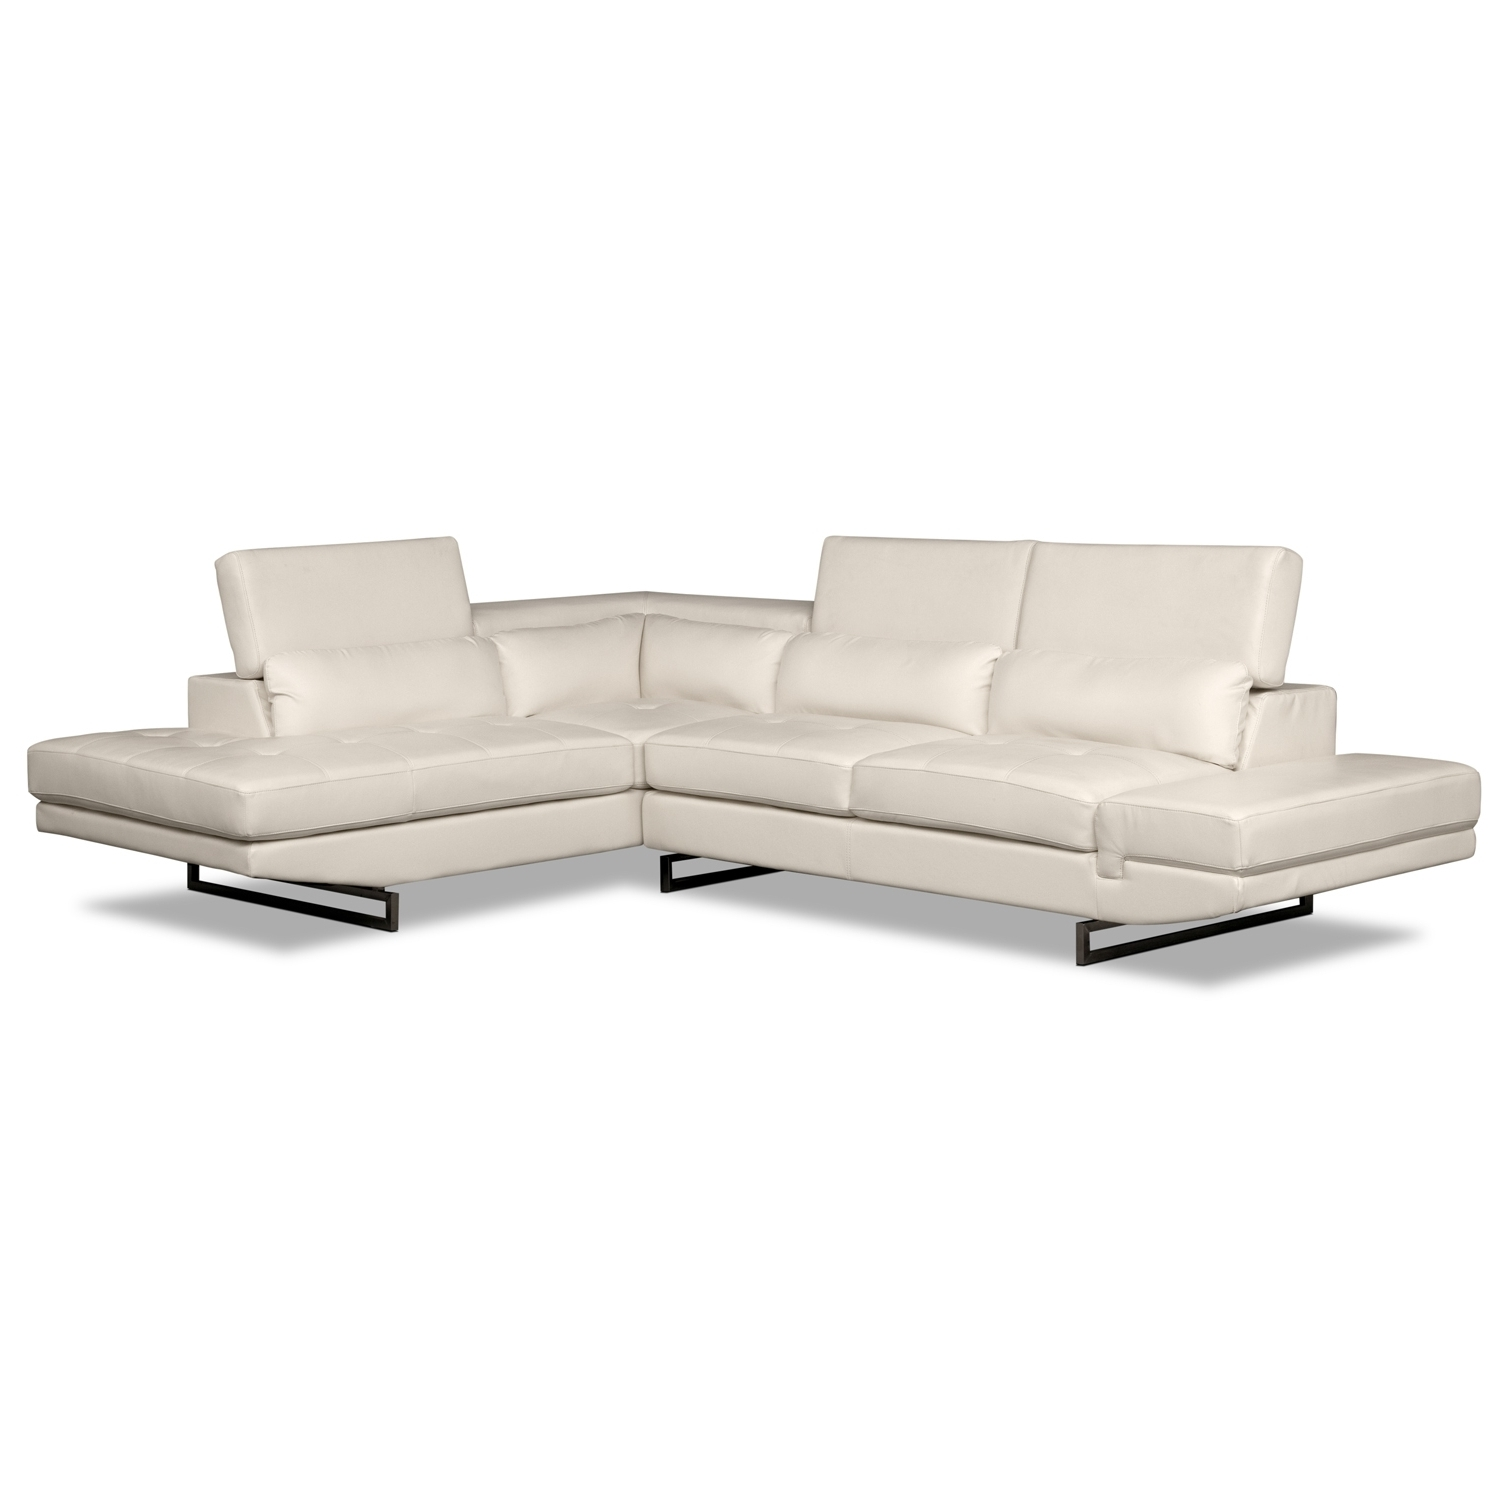 Most Recently Released Value City Sectional Sofas Pertaining To Living Room Design: Comfy White Leather Sectional For Small Spaces (View 9 of 20)